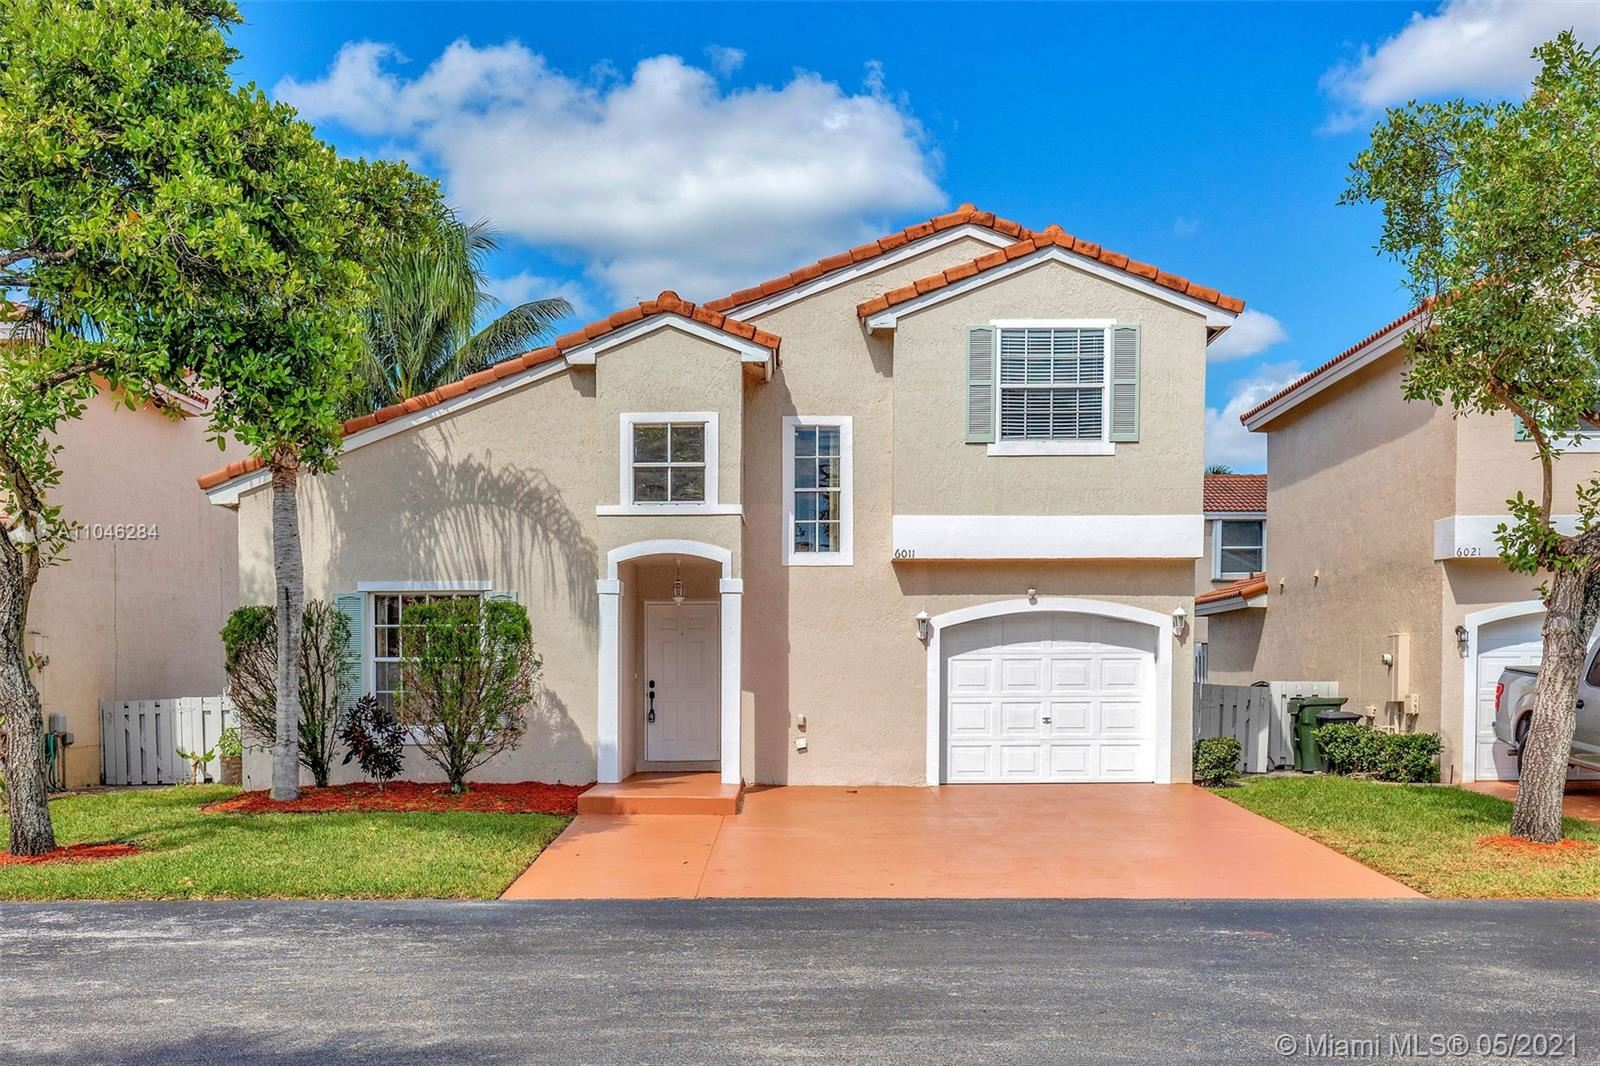 6011 NW 44th Ave, Coconut Creek, FL 33073 - #: A11046284